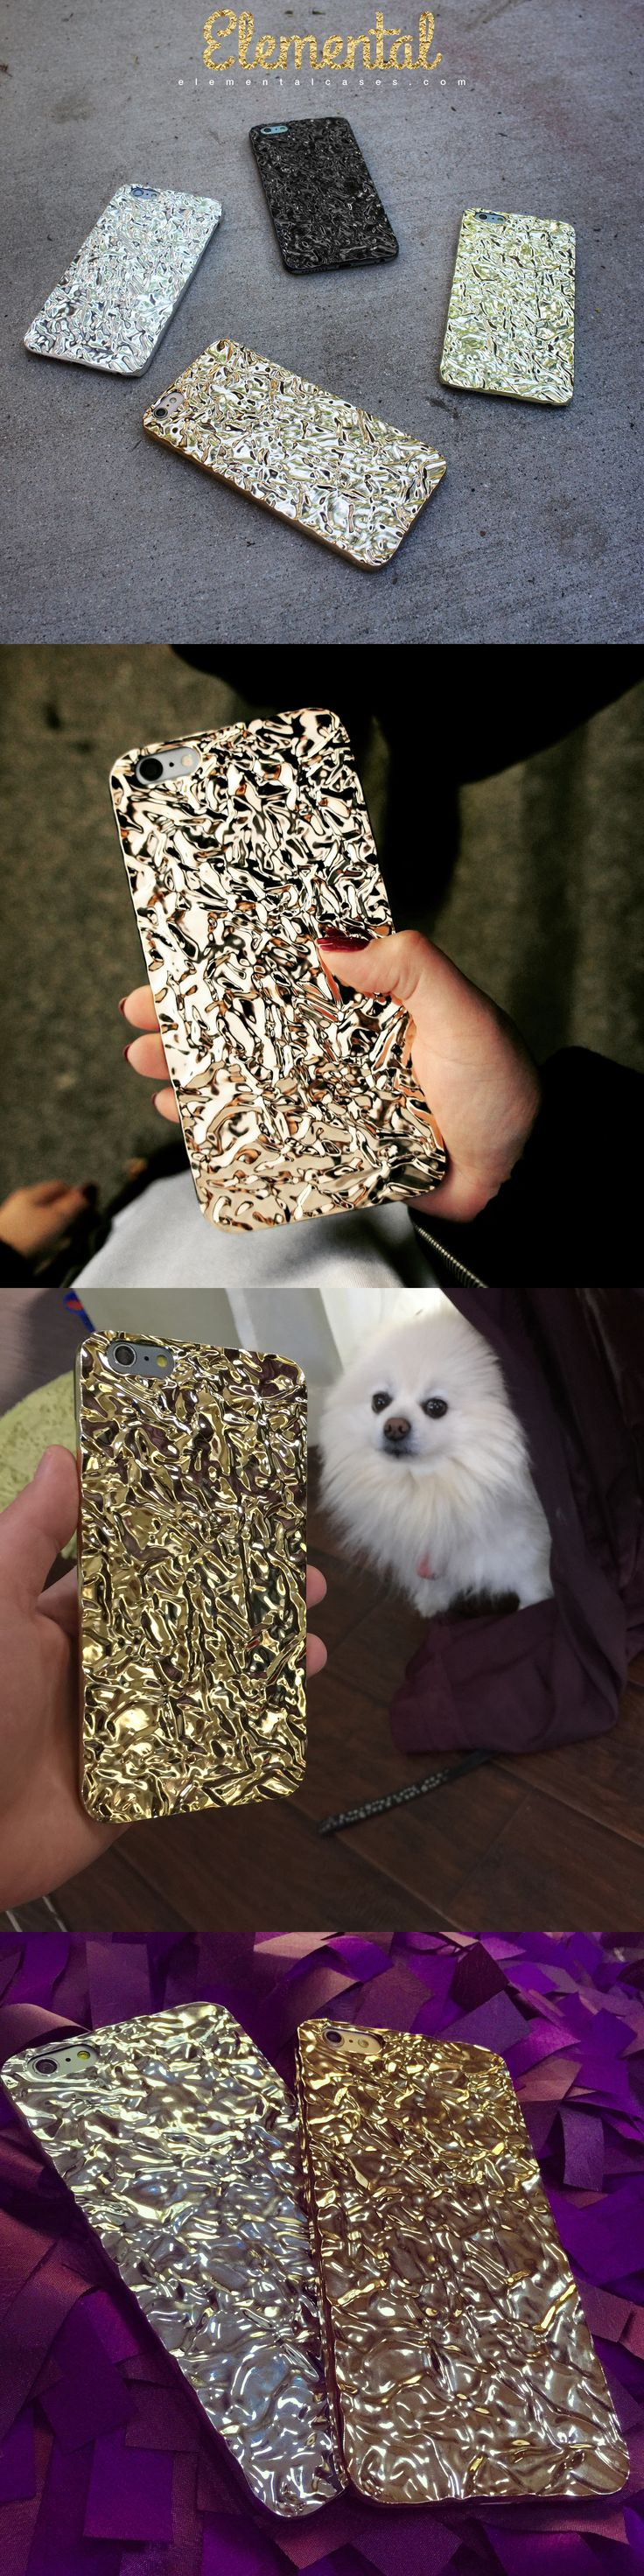 Gold Crystalline Case from Elemental Cases - iPhone 6 & iPhone 6 Plus